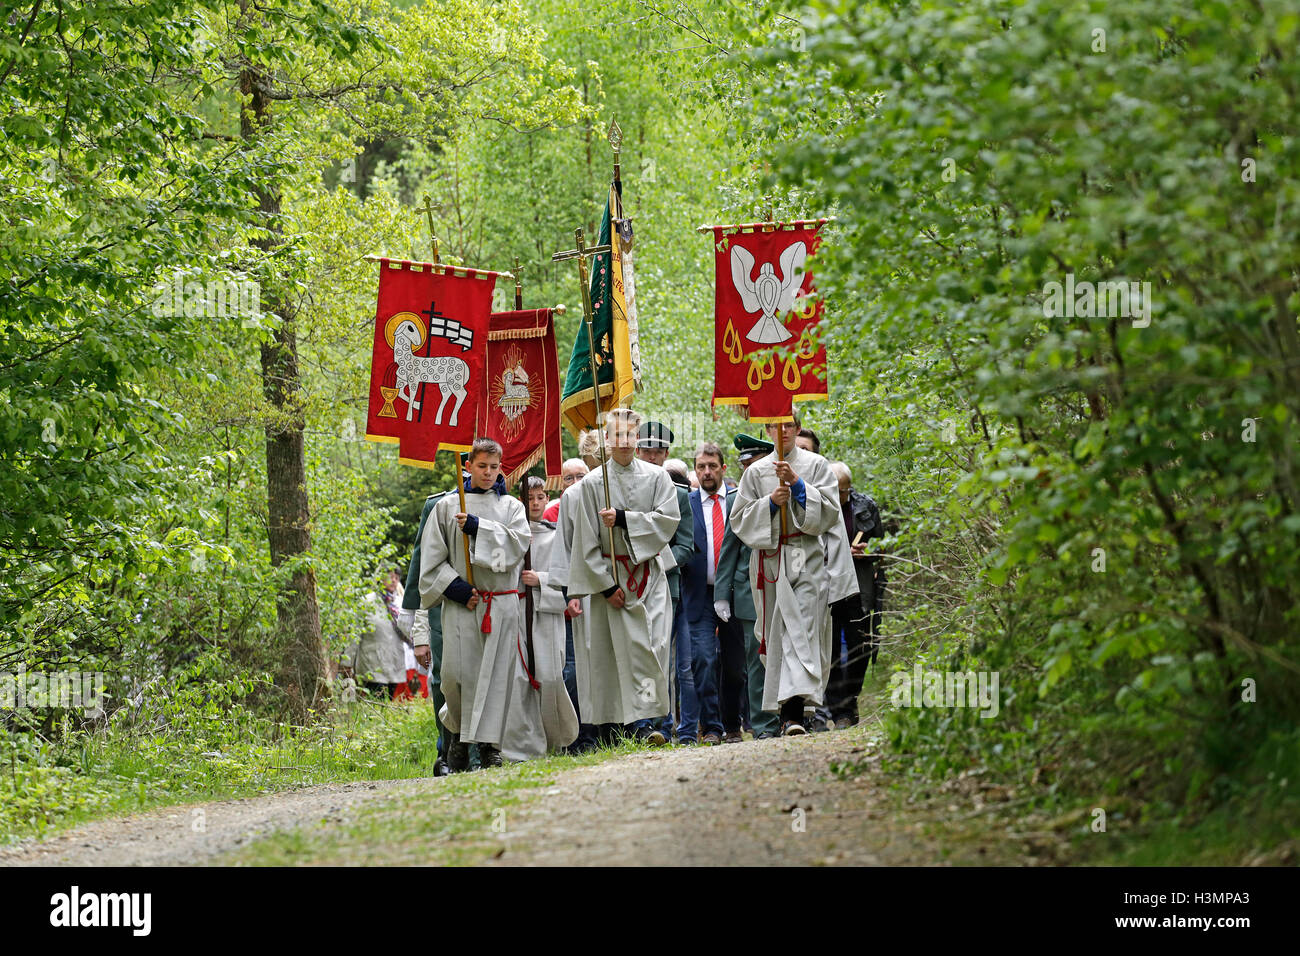 Whitsun procession, Neuenkleusheim, Olpe, Sauerland, North Rhine-Westfalia, Germany - Stock Image